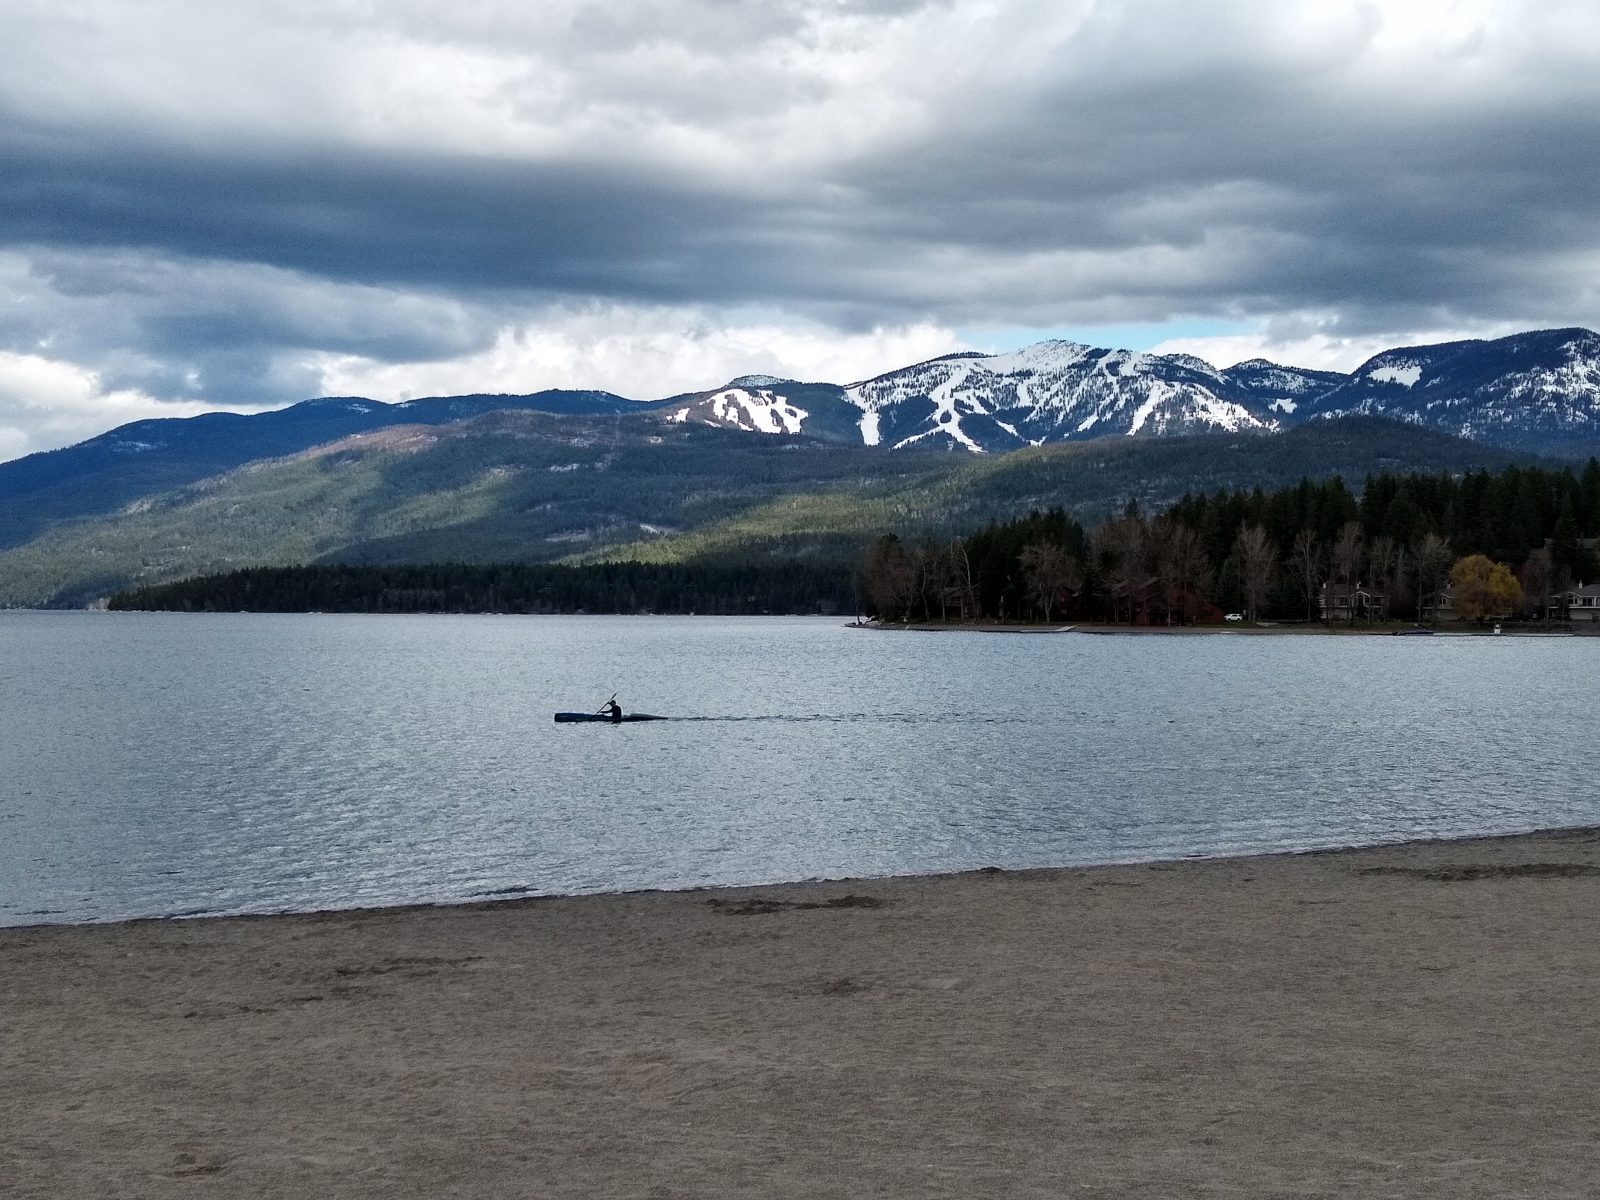 Whitefish Lake - April 30, 2020